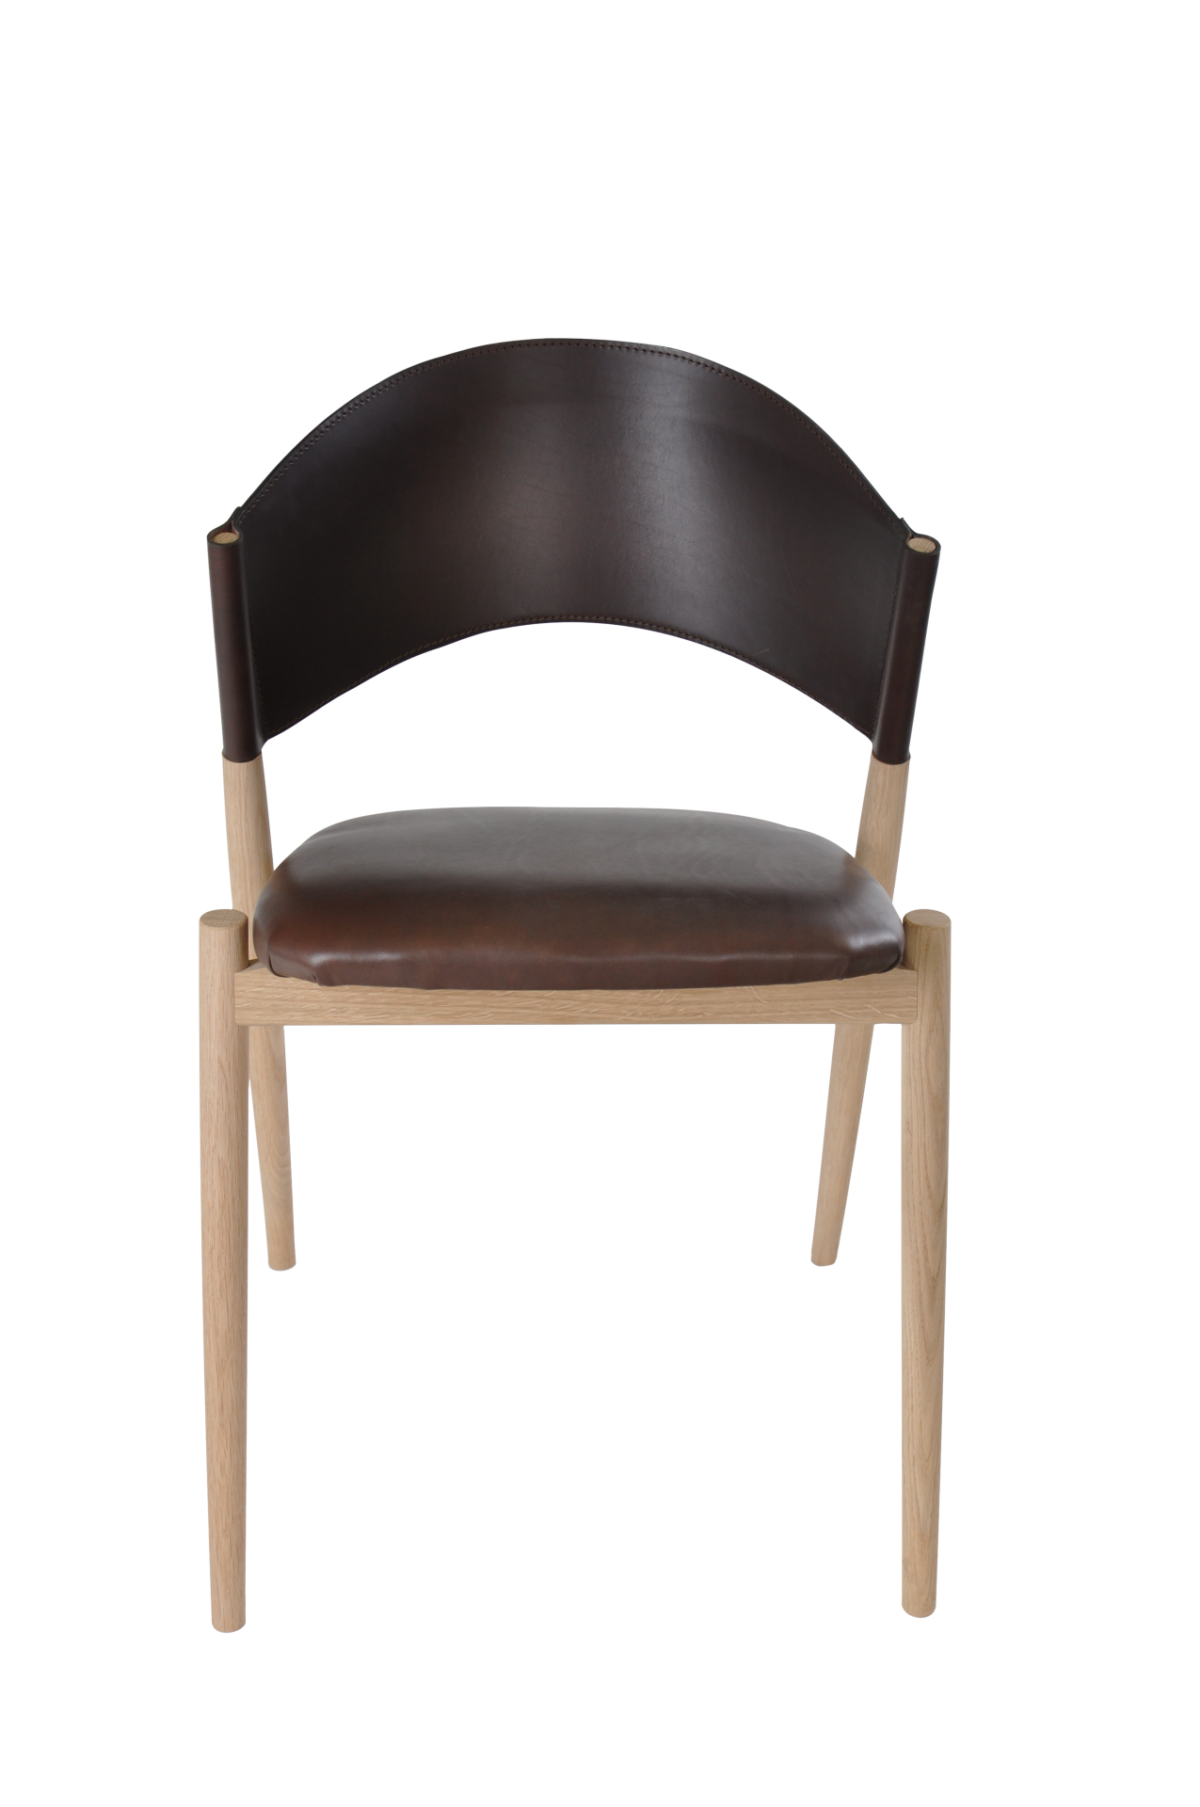 A Chair front mocca leather